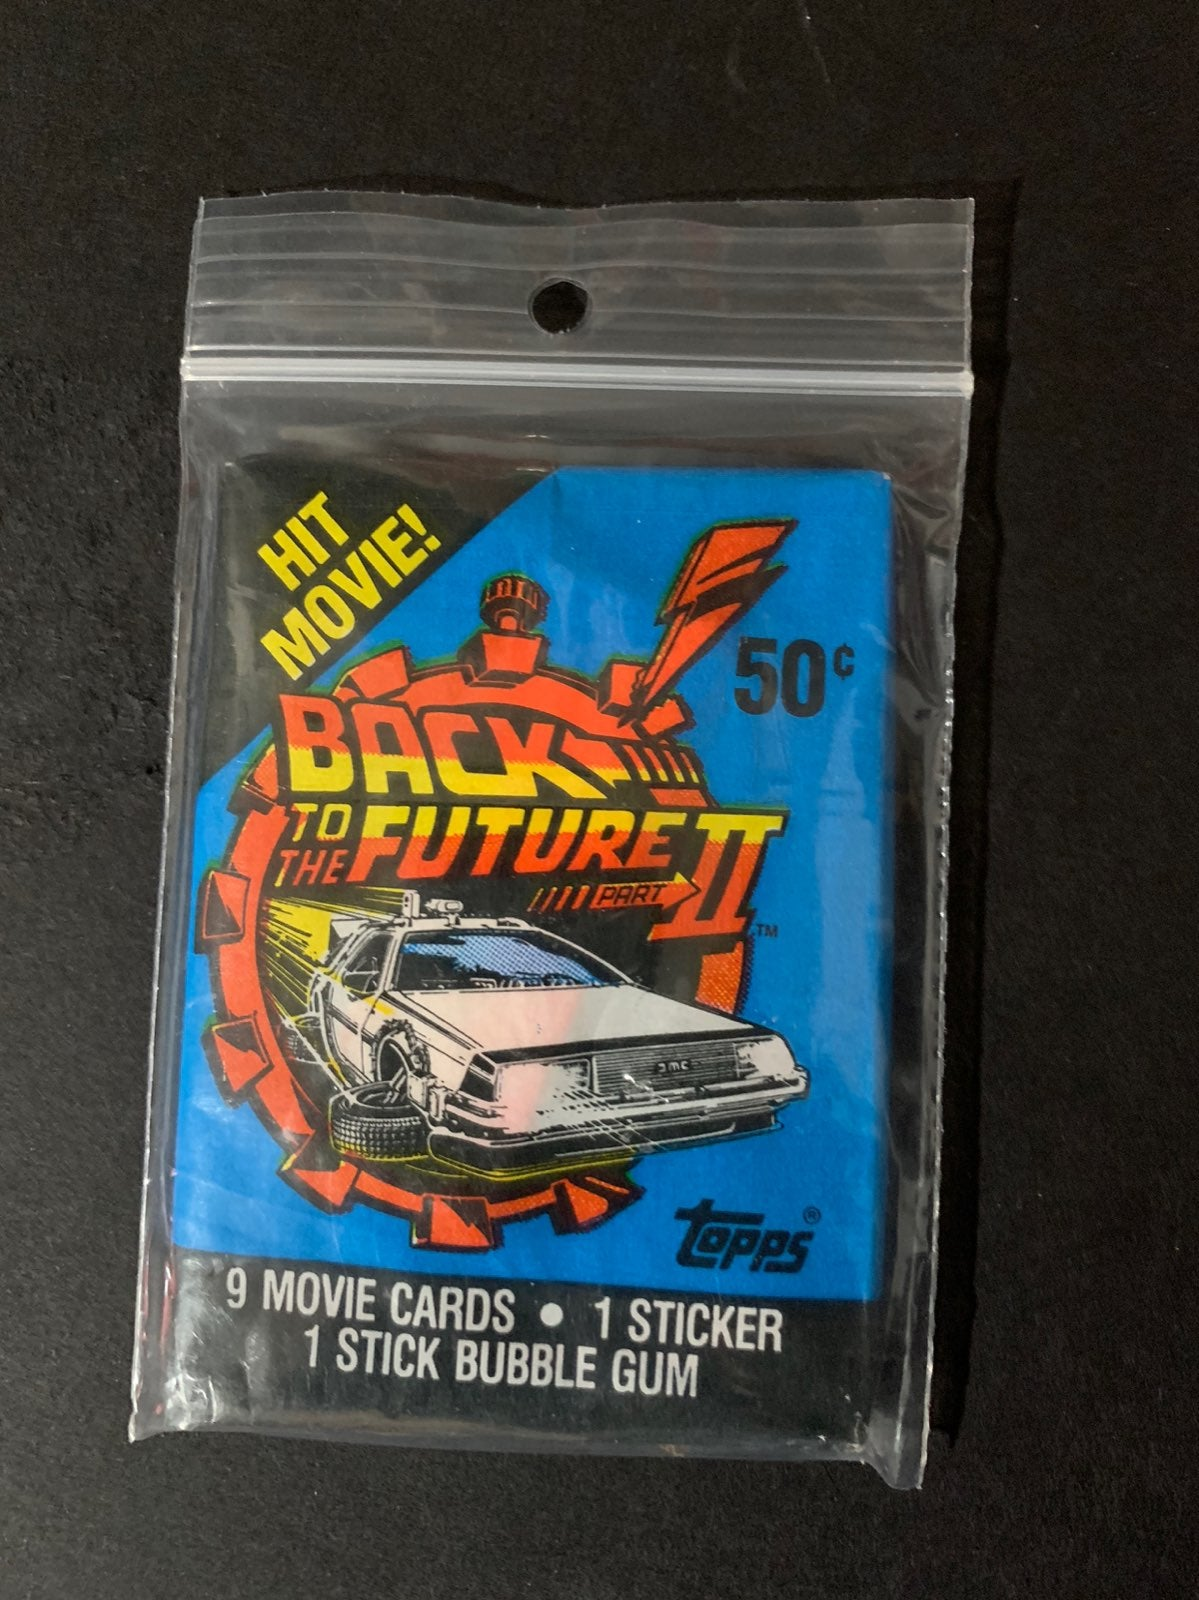 Back to the Future II - Trading Cards!